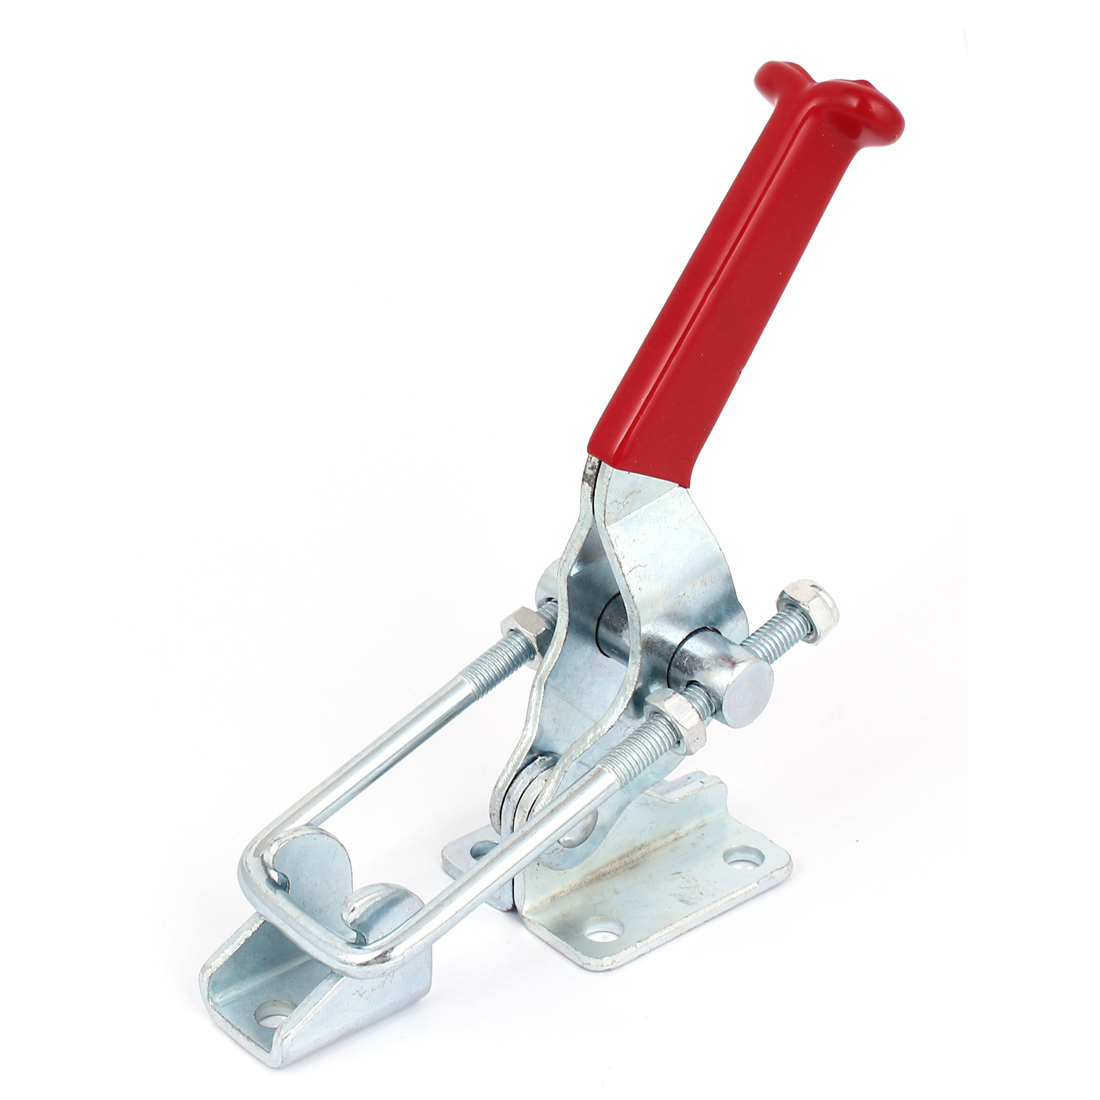 990Kg 2183Lbs Holding Capacity Quick Hold Latch Type Toggle Clamp 40341